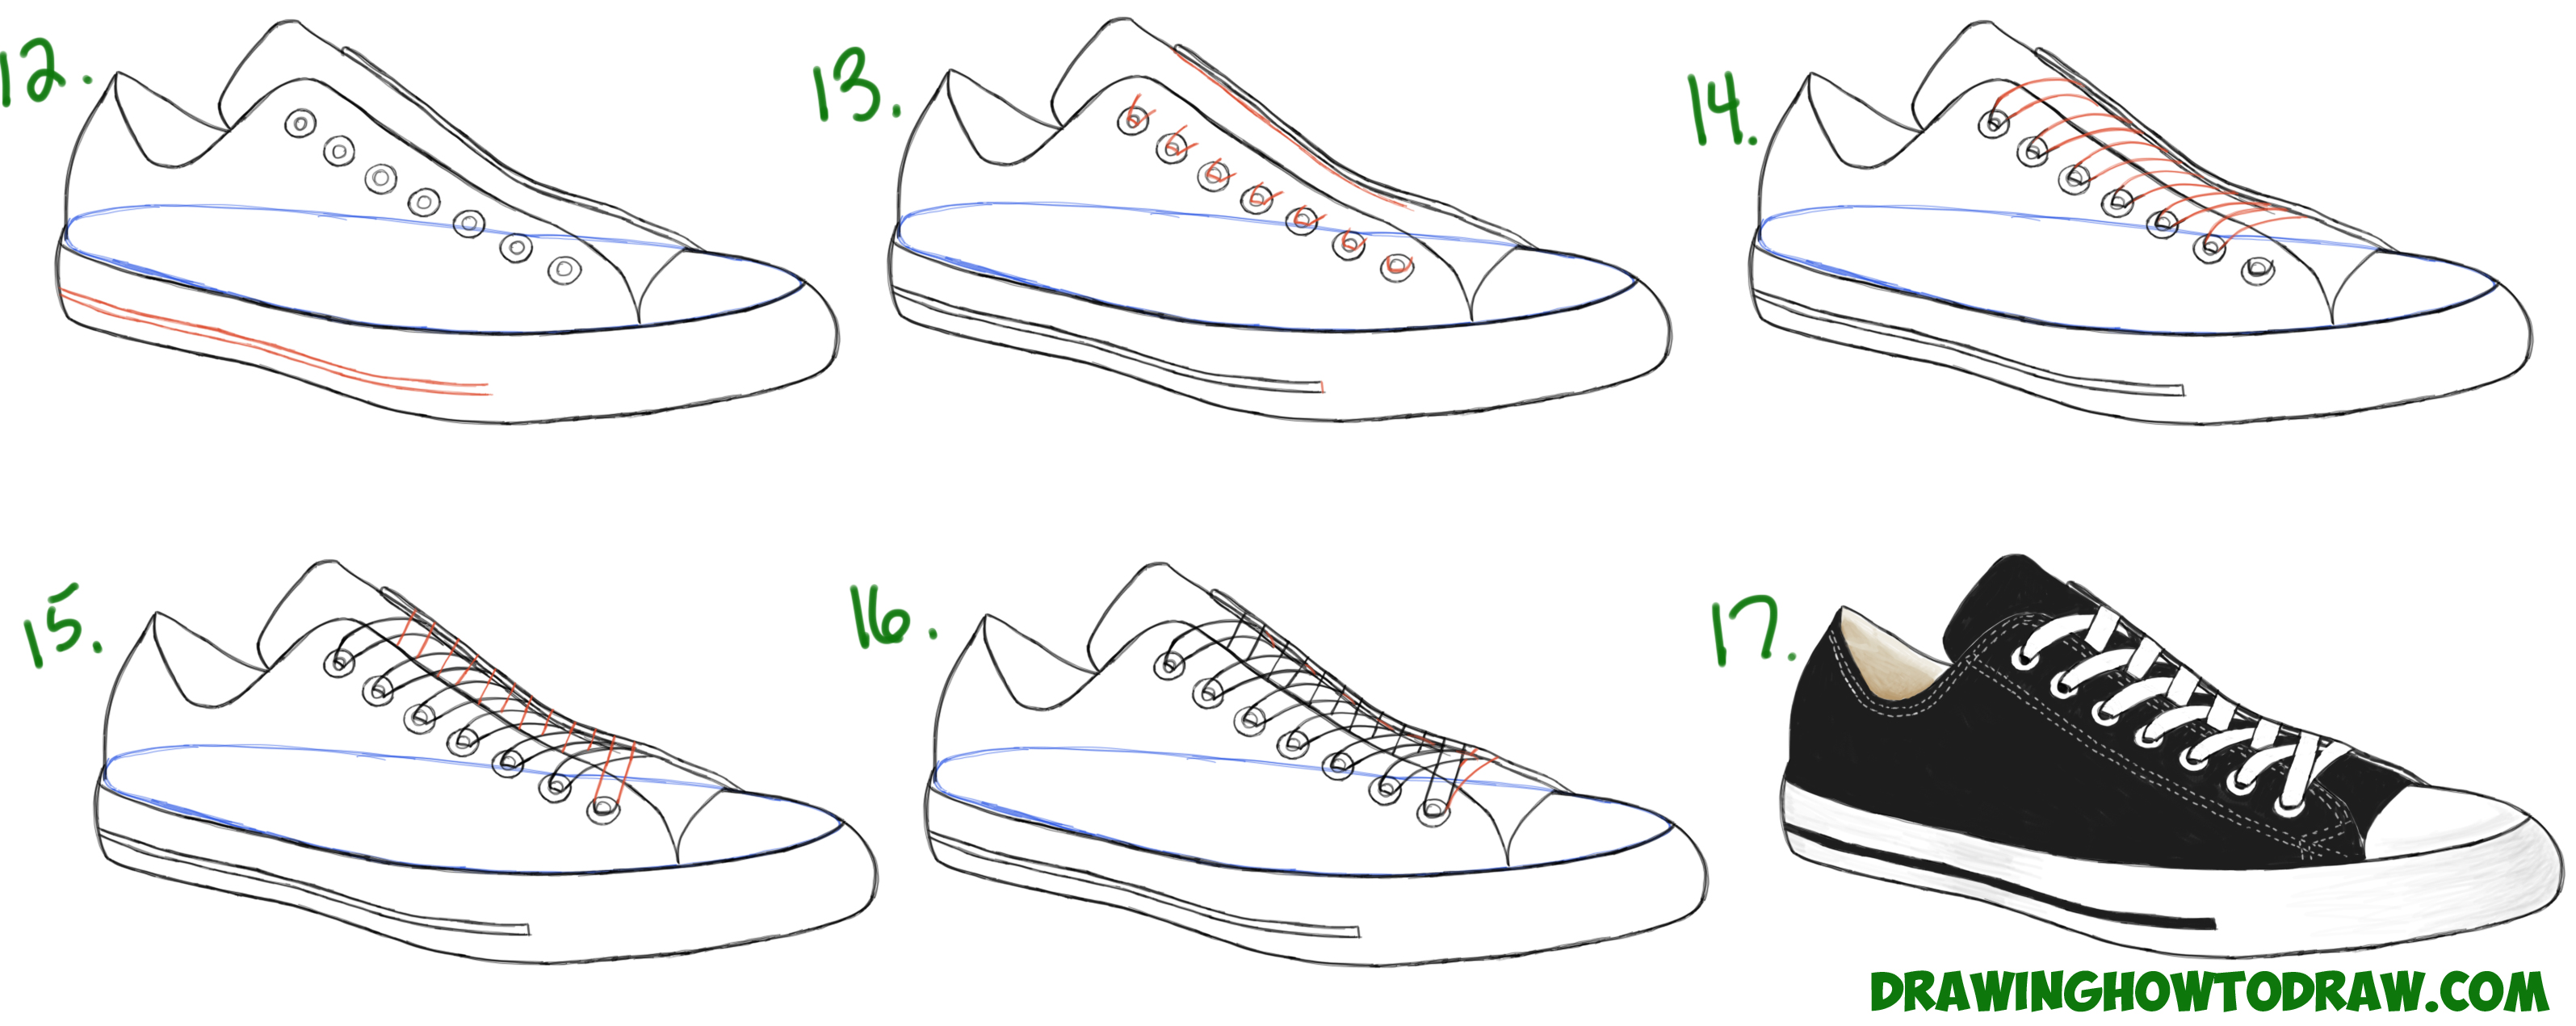 ae1fb0be1d48 How to Draw Sneakers   Shoes with Easy Step by Step Drawing .